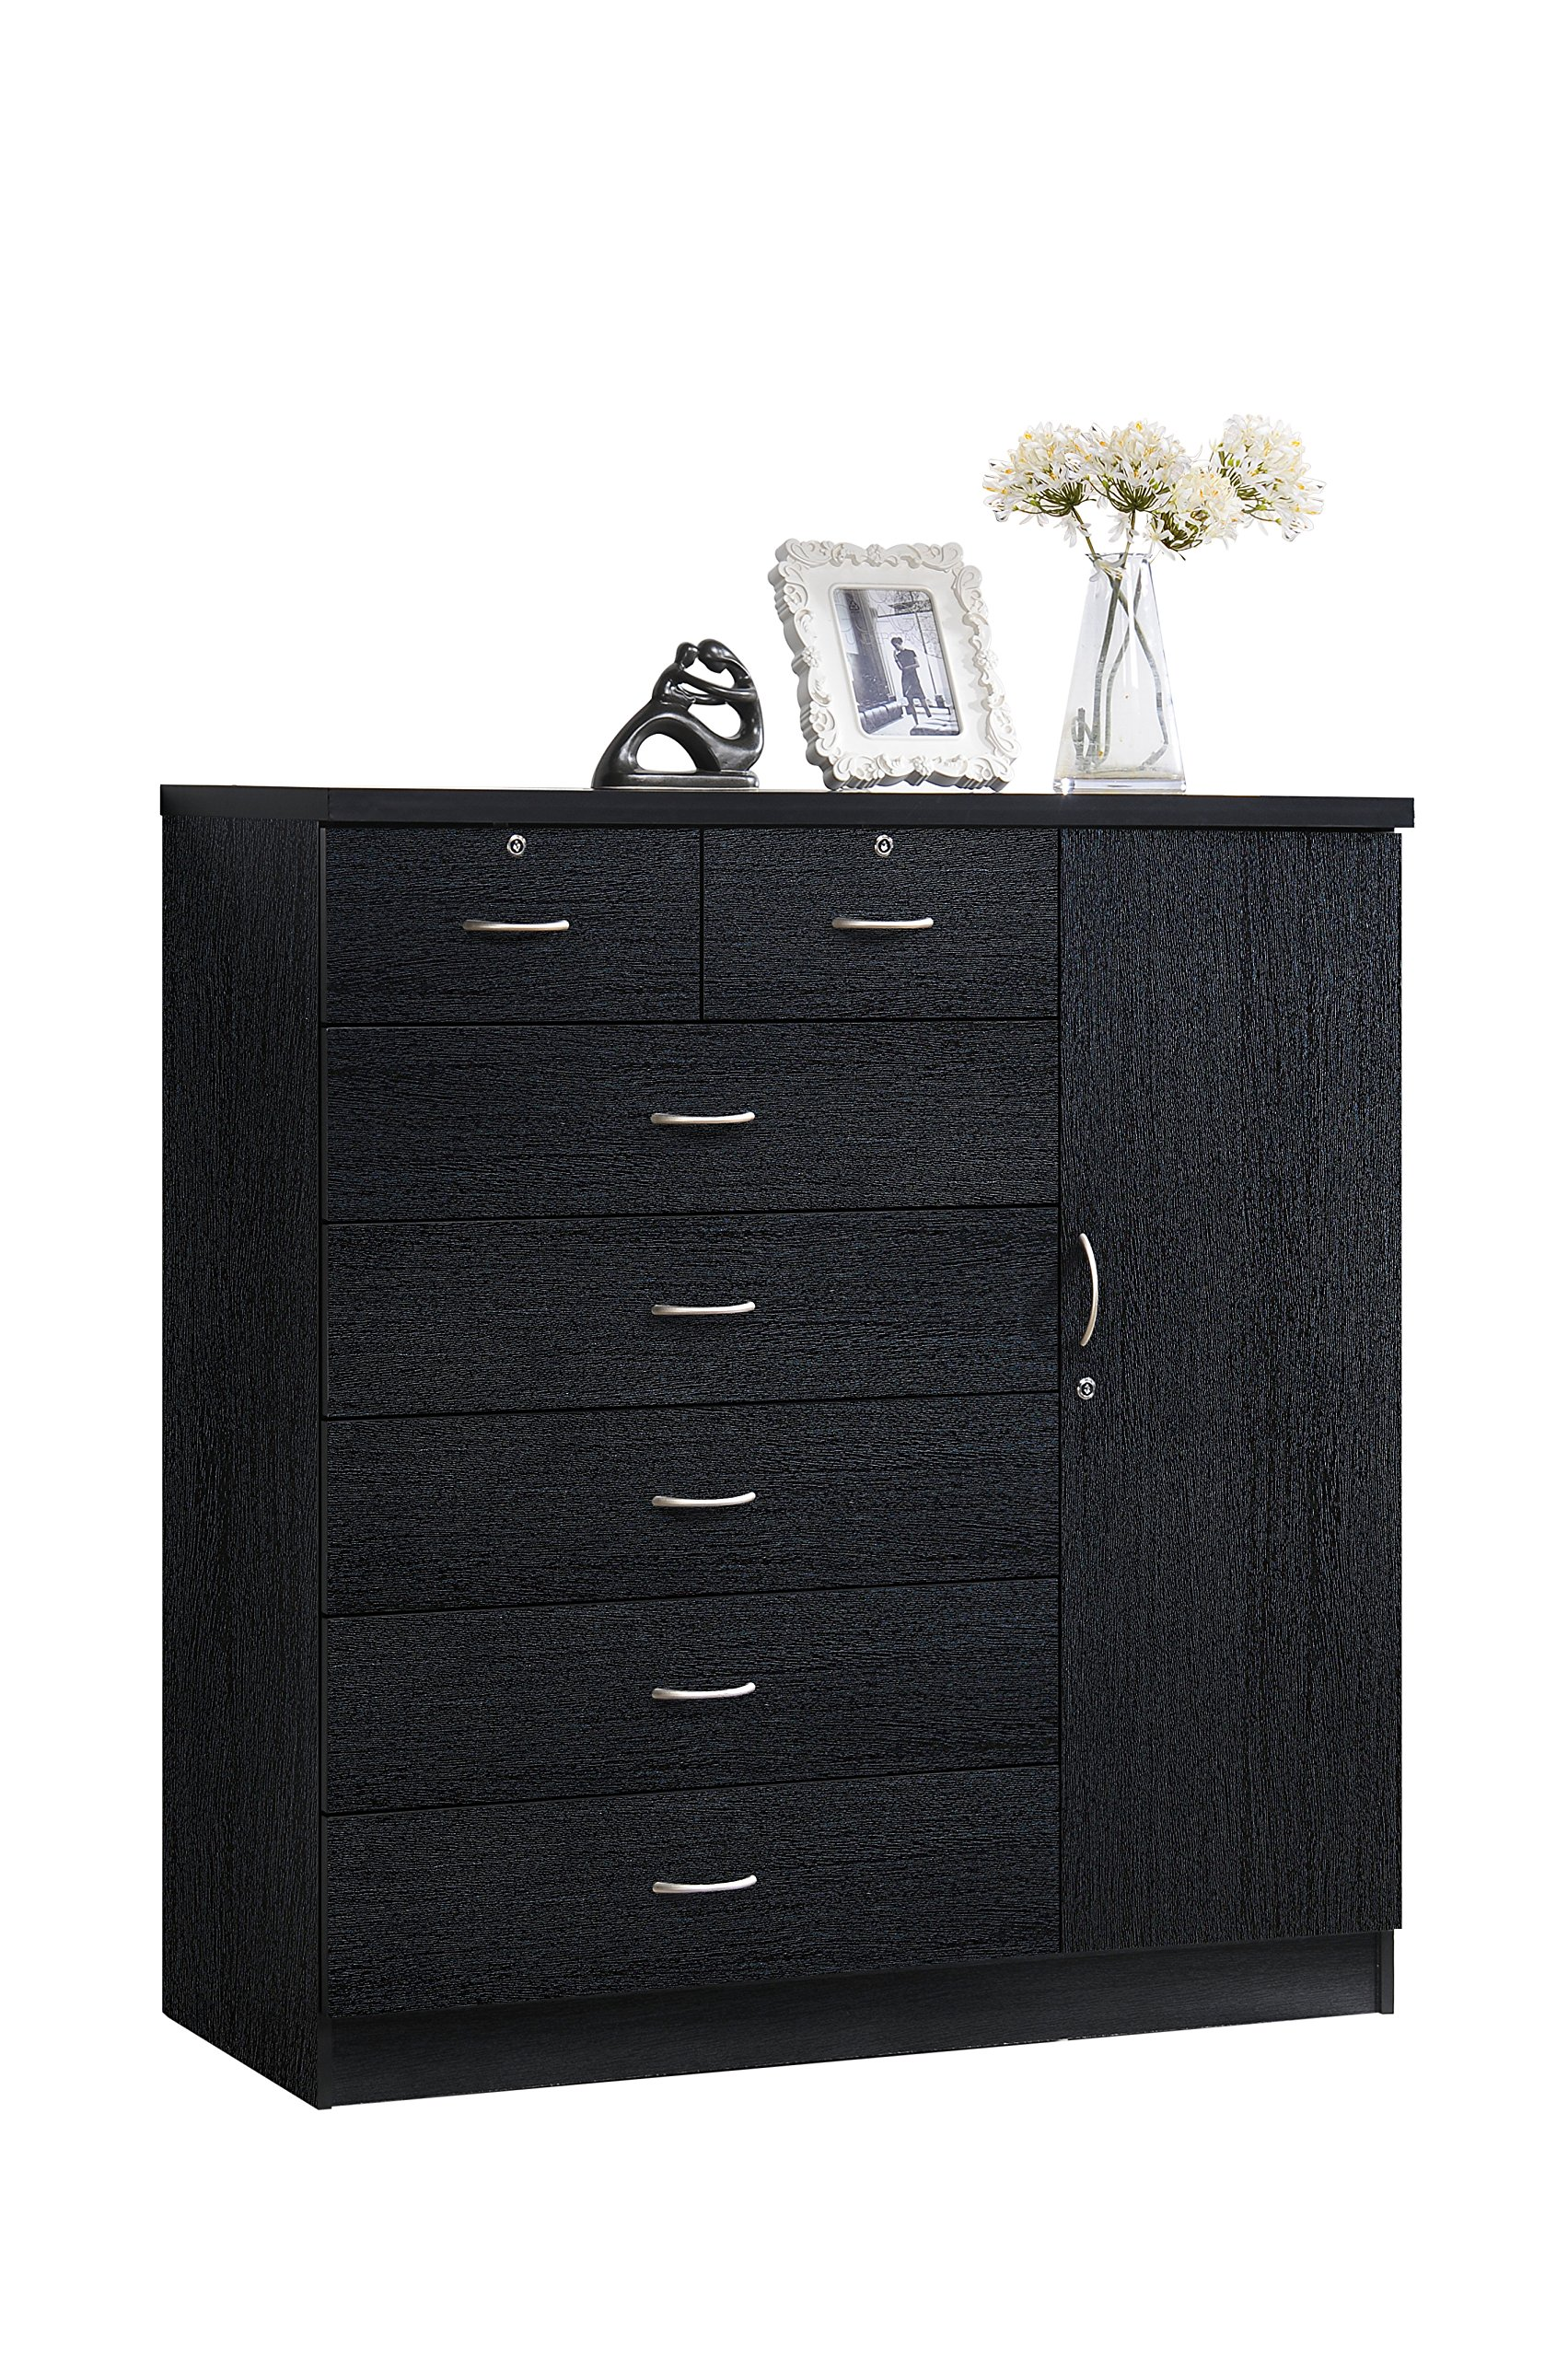 Hodedah 7 Drawer Jumbo Chest, Five Large Drawers, Two Smaller Drawers with Two Lock, Hanging Rod, and Three Shelves, Black by HODEDAH IMPORT